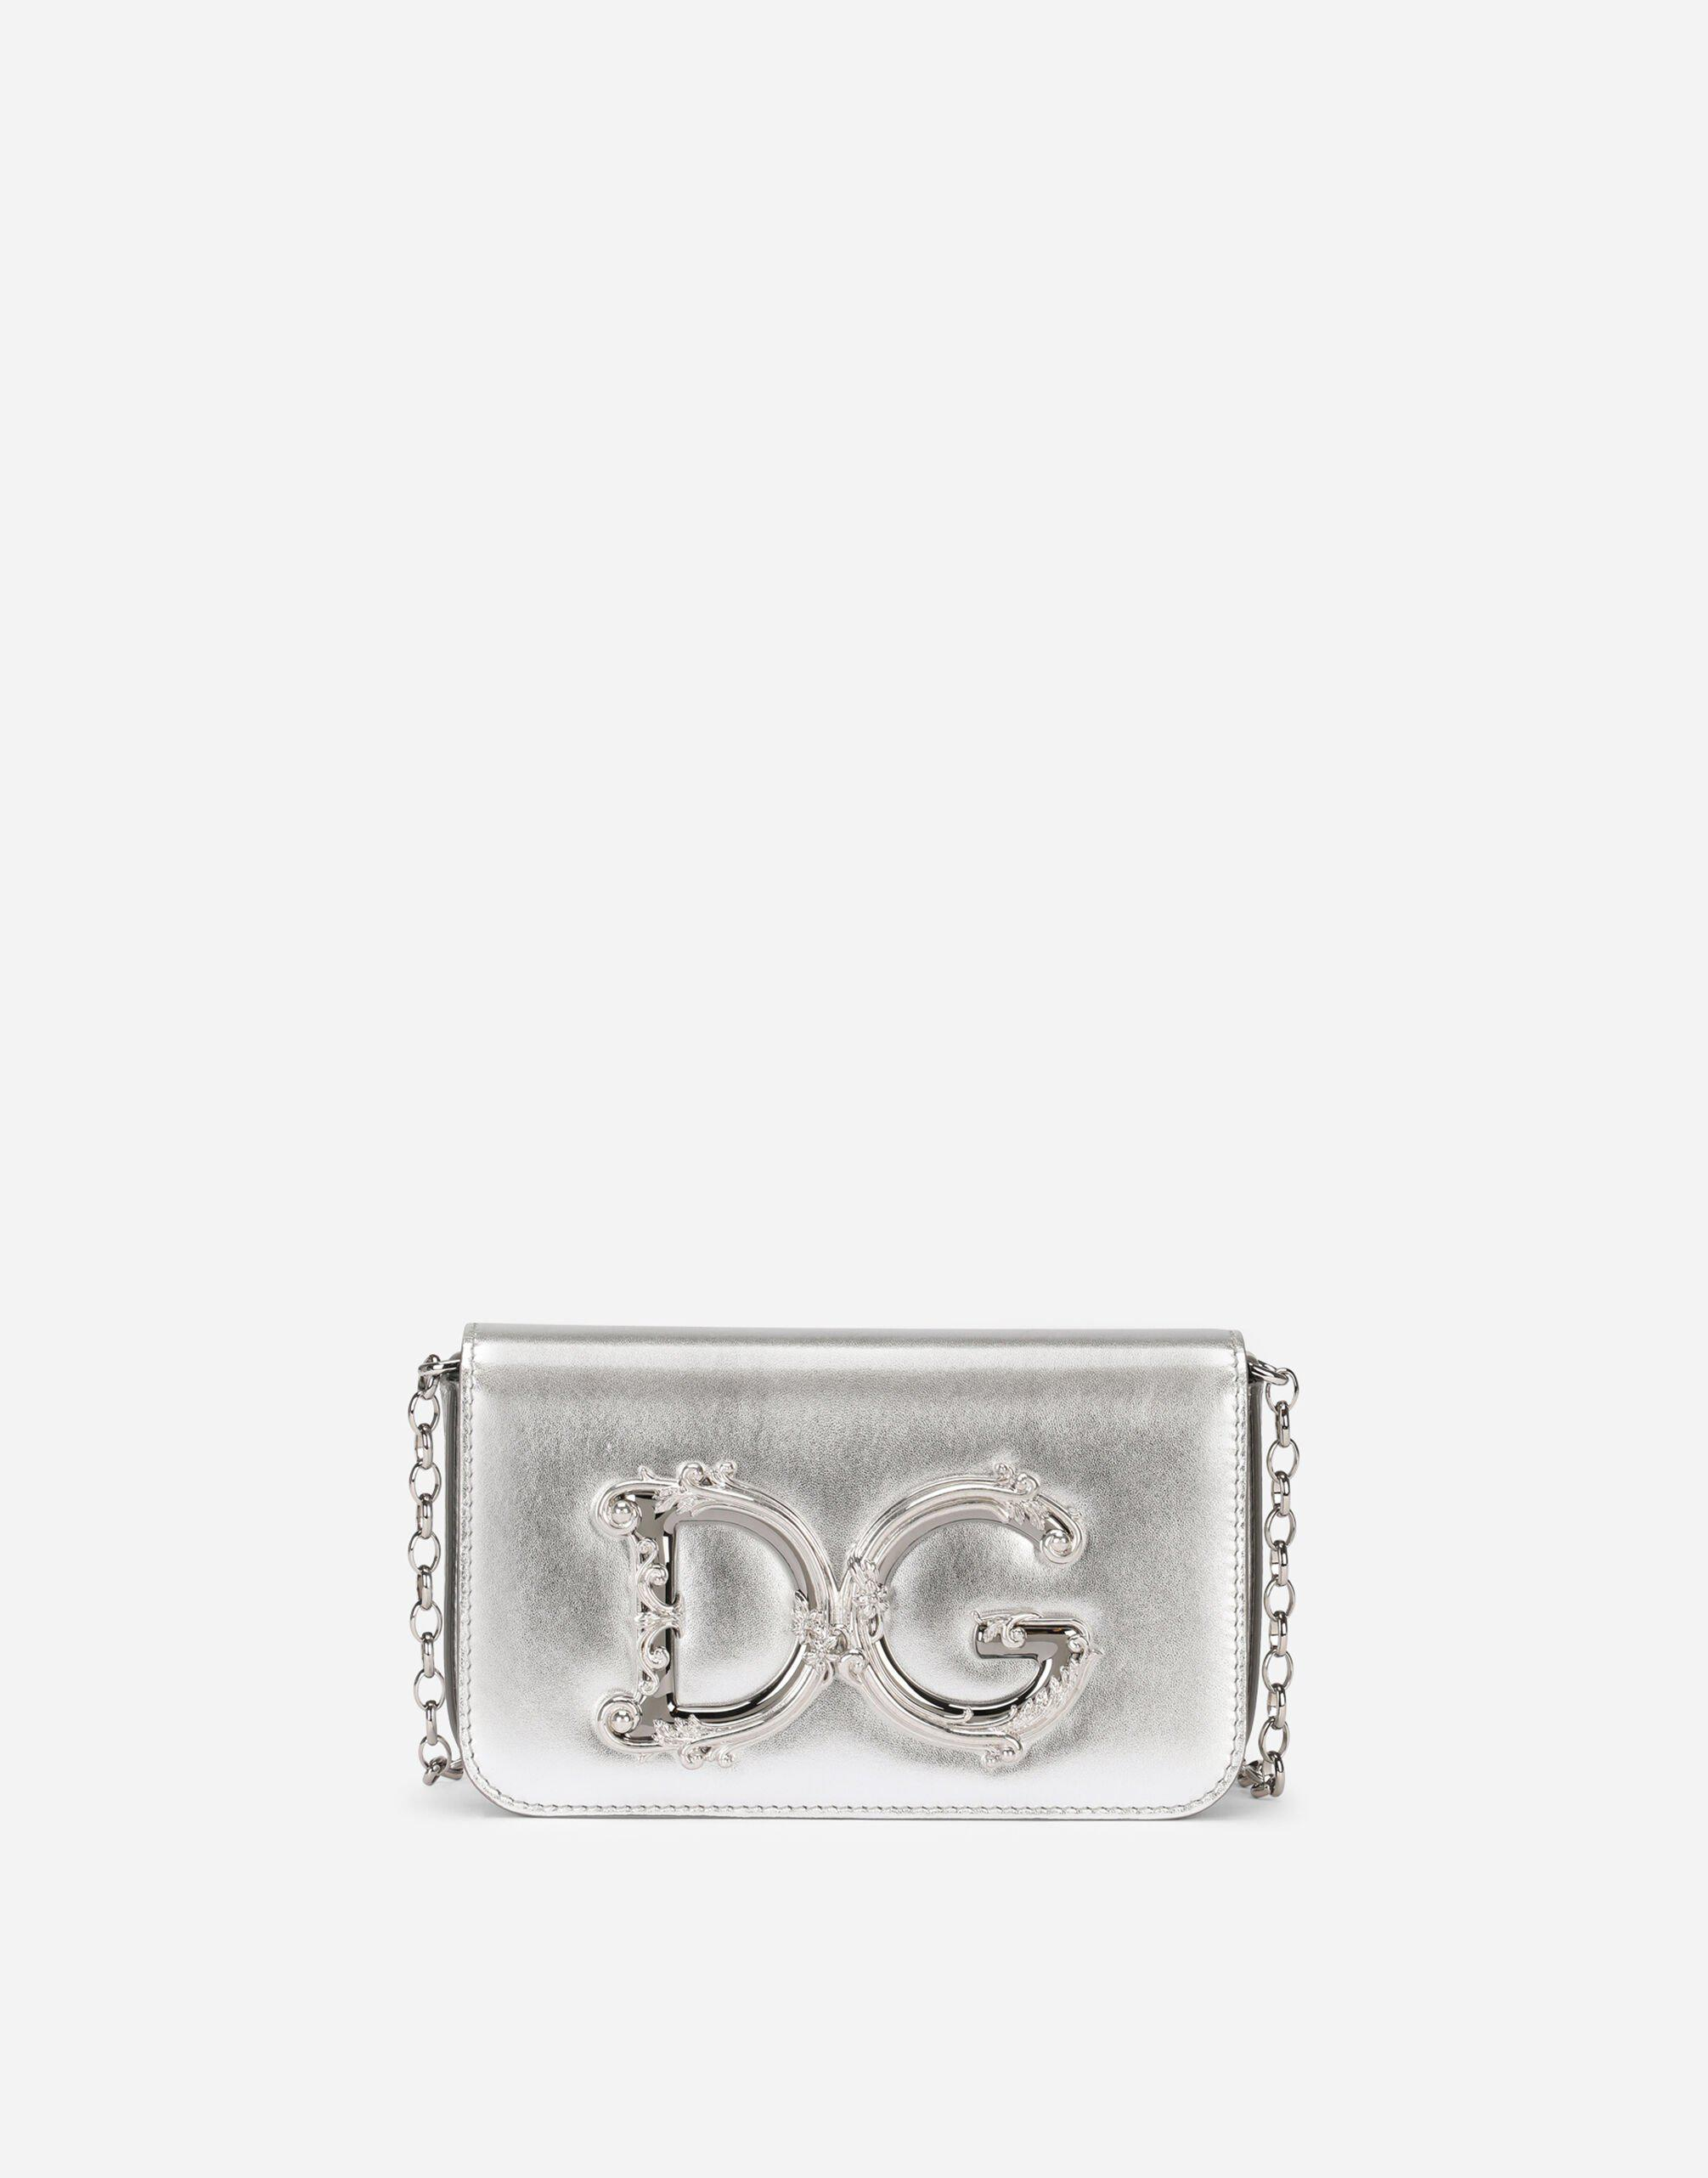 DG Girls clutch in nappa mordore leather